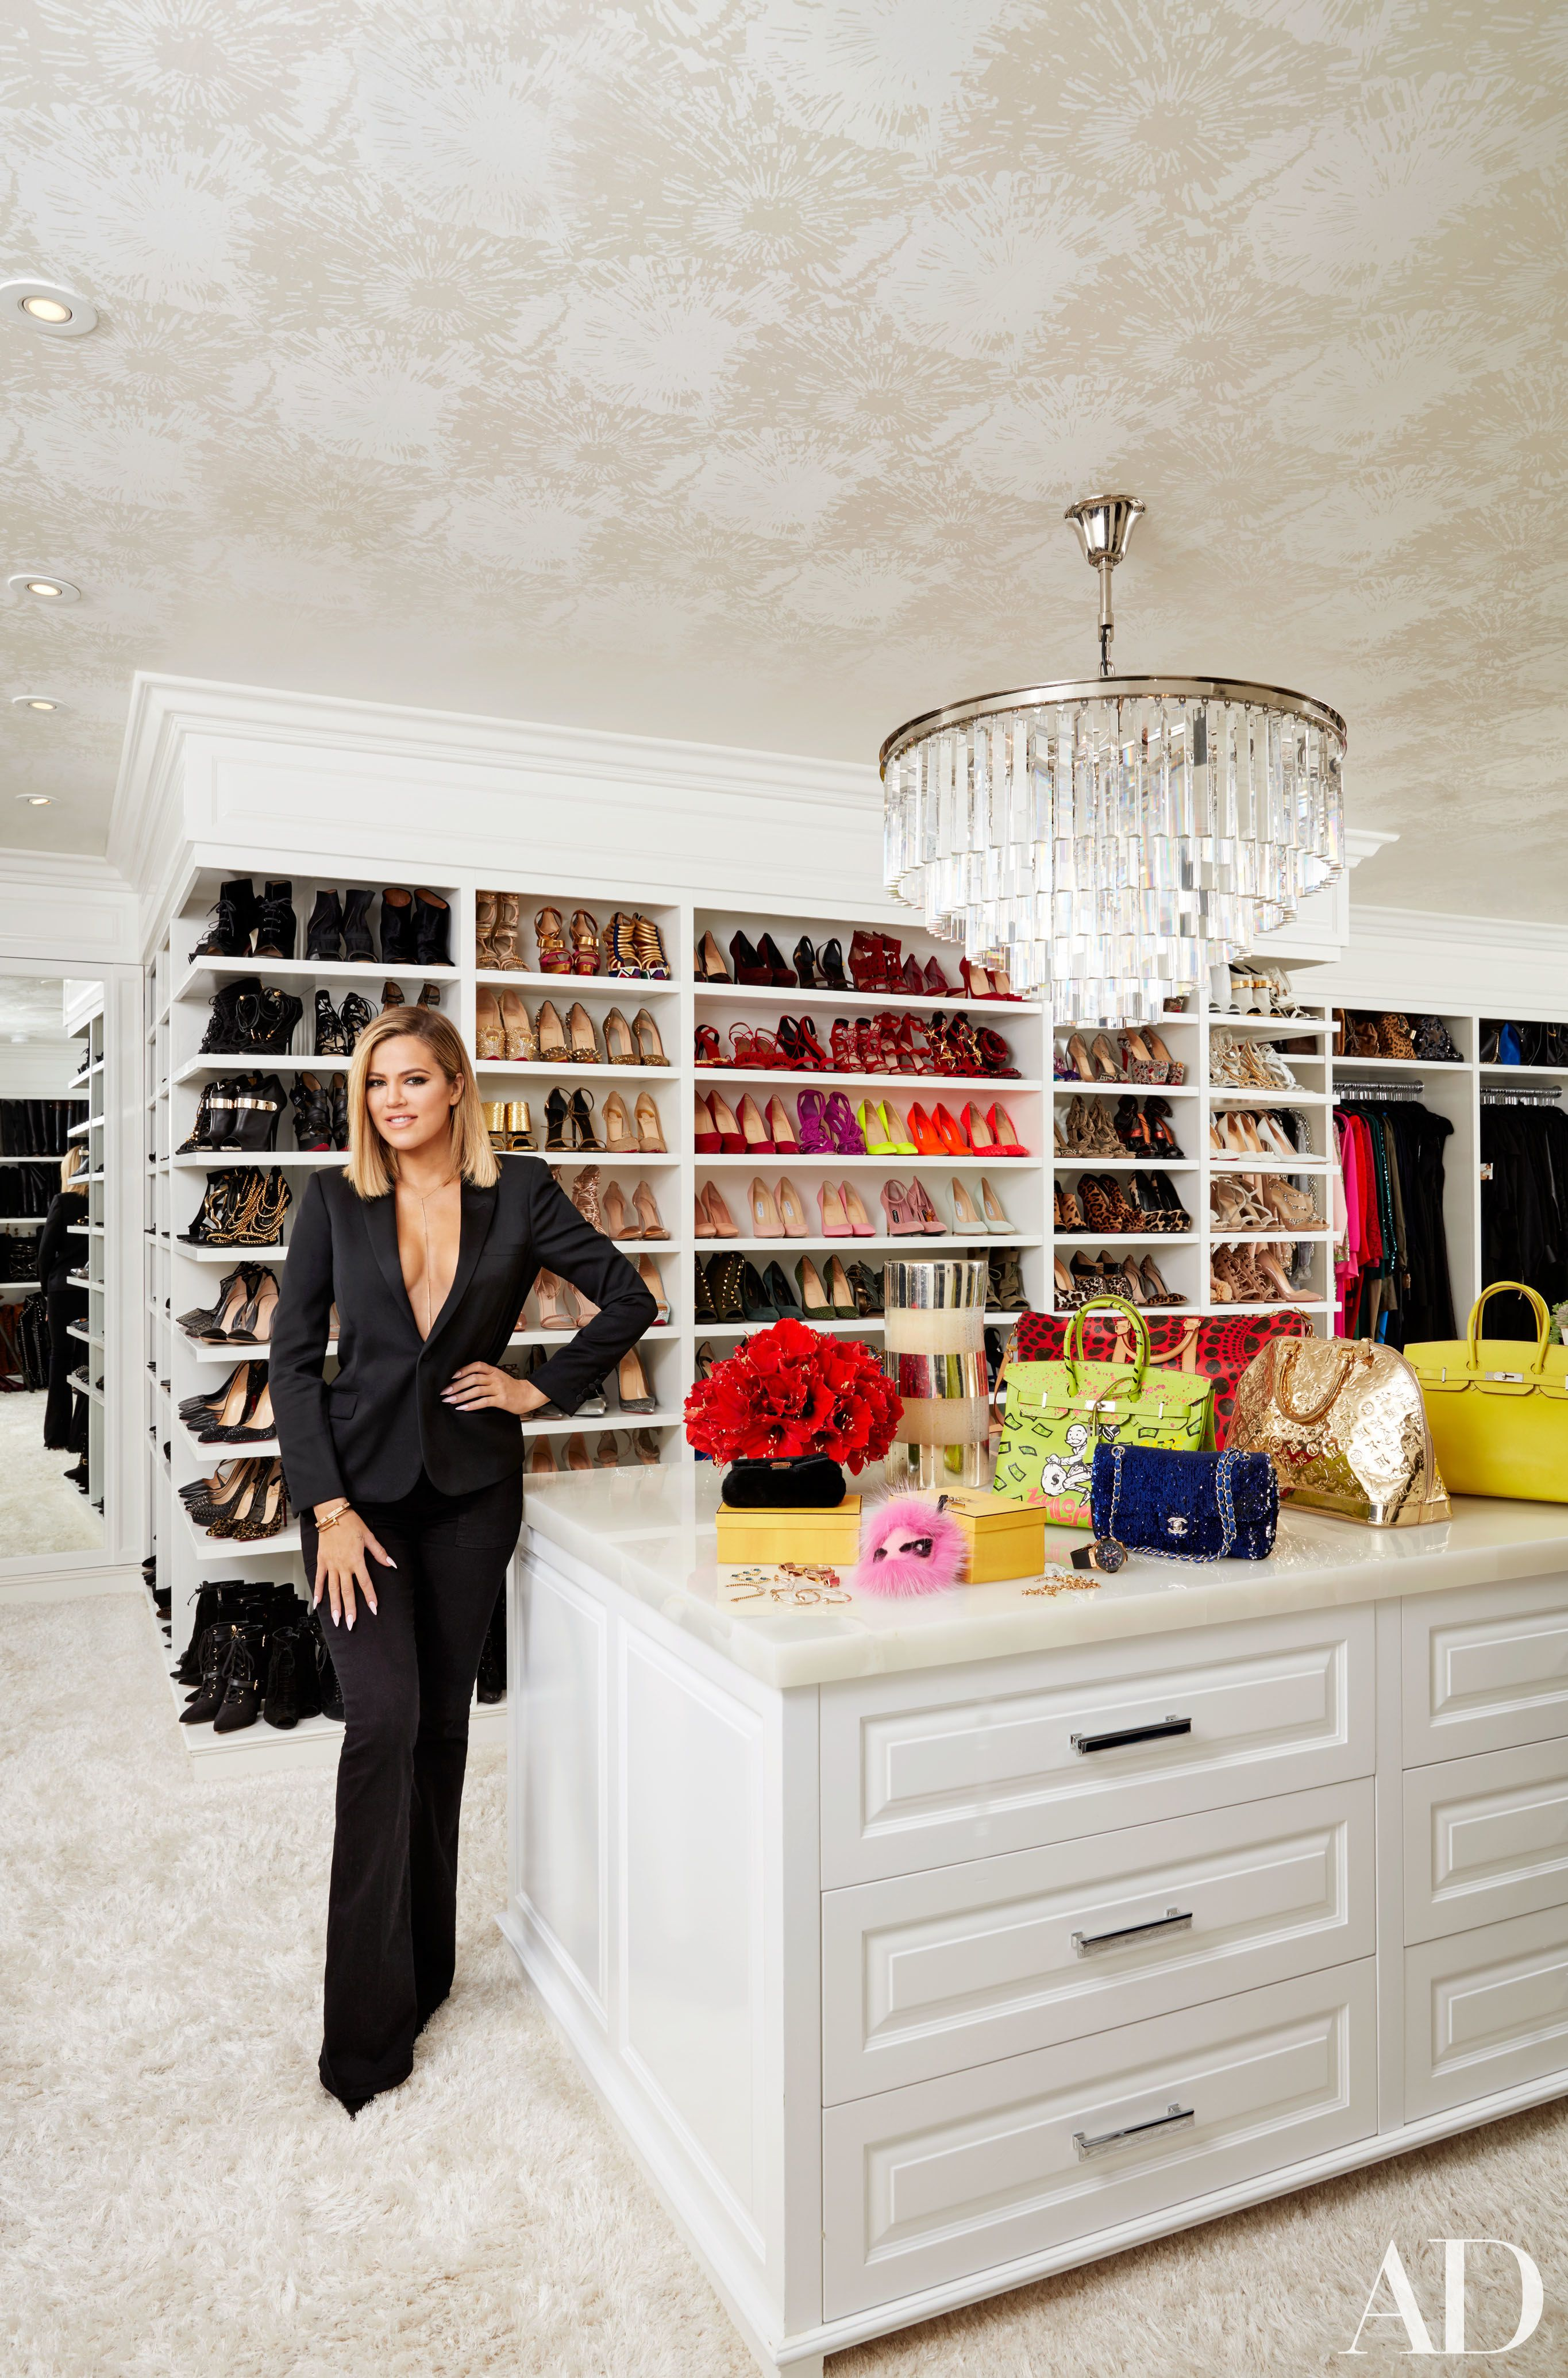 closet see big wardrobes the takes full literally now for her in fashionista and america this to island story pin biggest charity dream sale closets